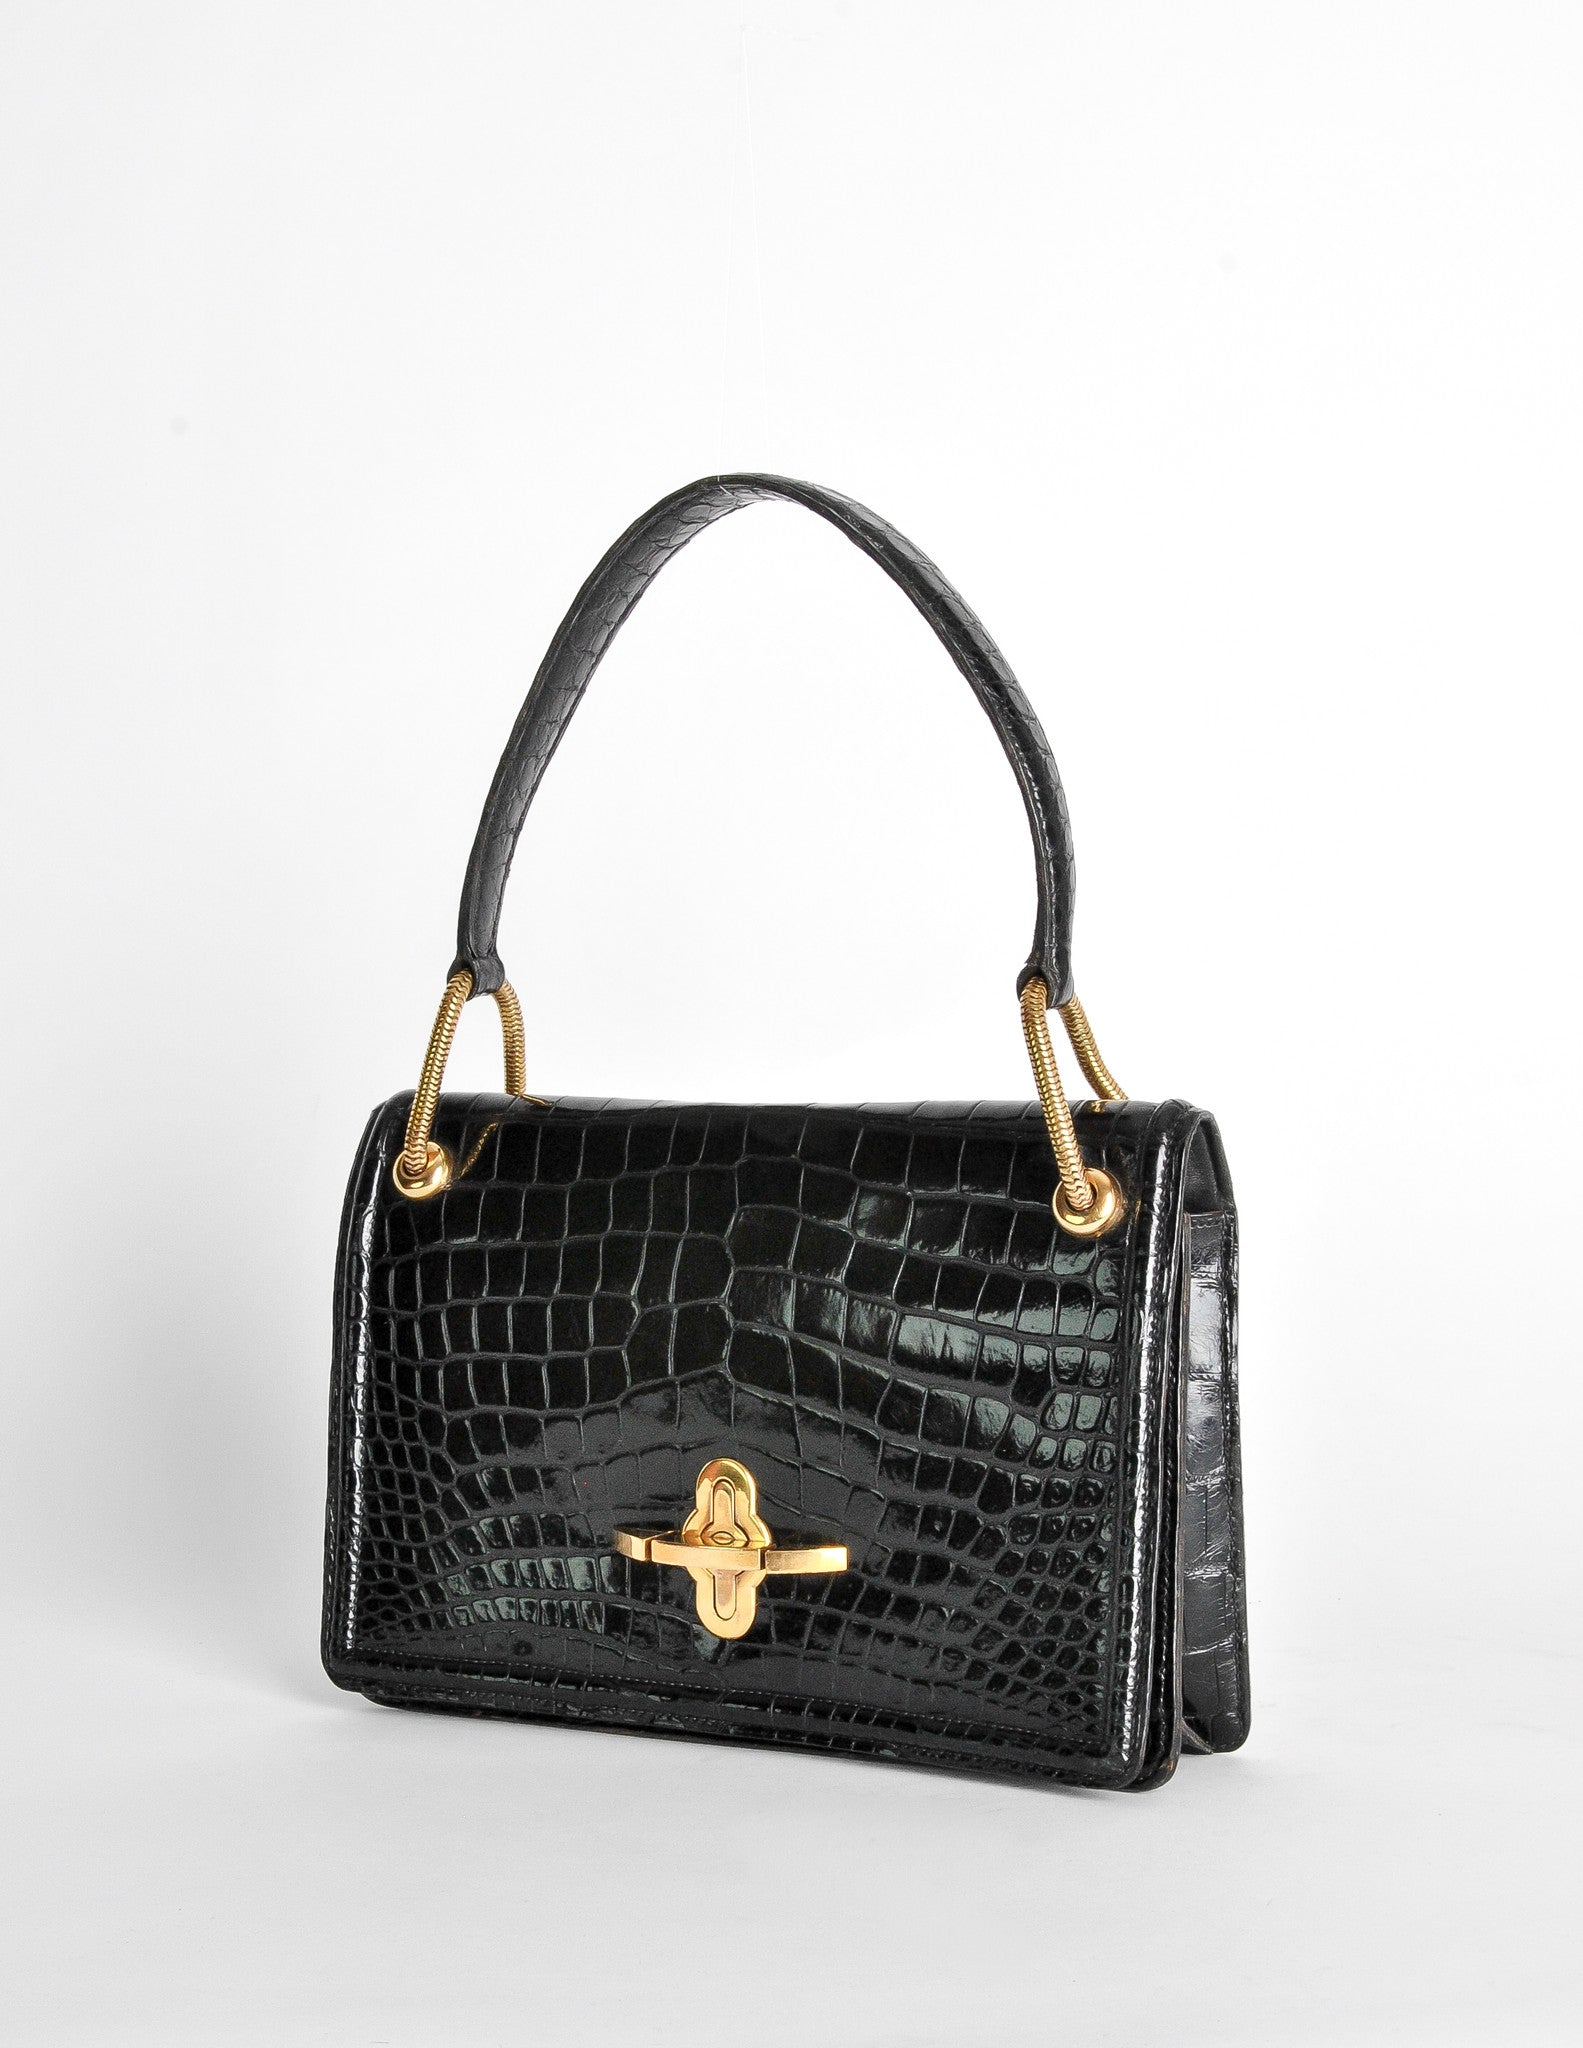 You searched for: black croc bag! Etsy is the home to thousands of handmade, vintage, and one-of-a-kind products and gifts related to your search. No matter what you're looking for or where you are in the world, our global marketplace of sellers can help you find unique and affordable options. Let's get started!